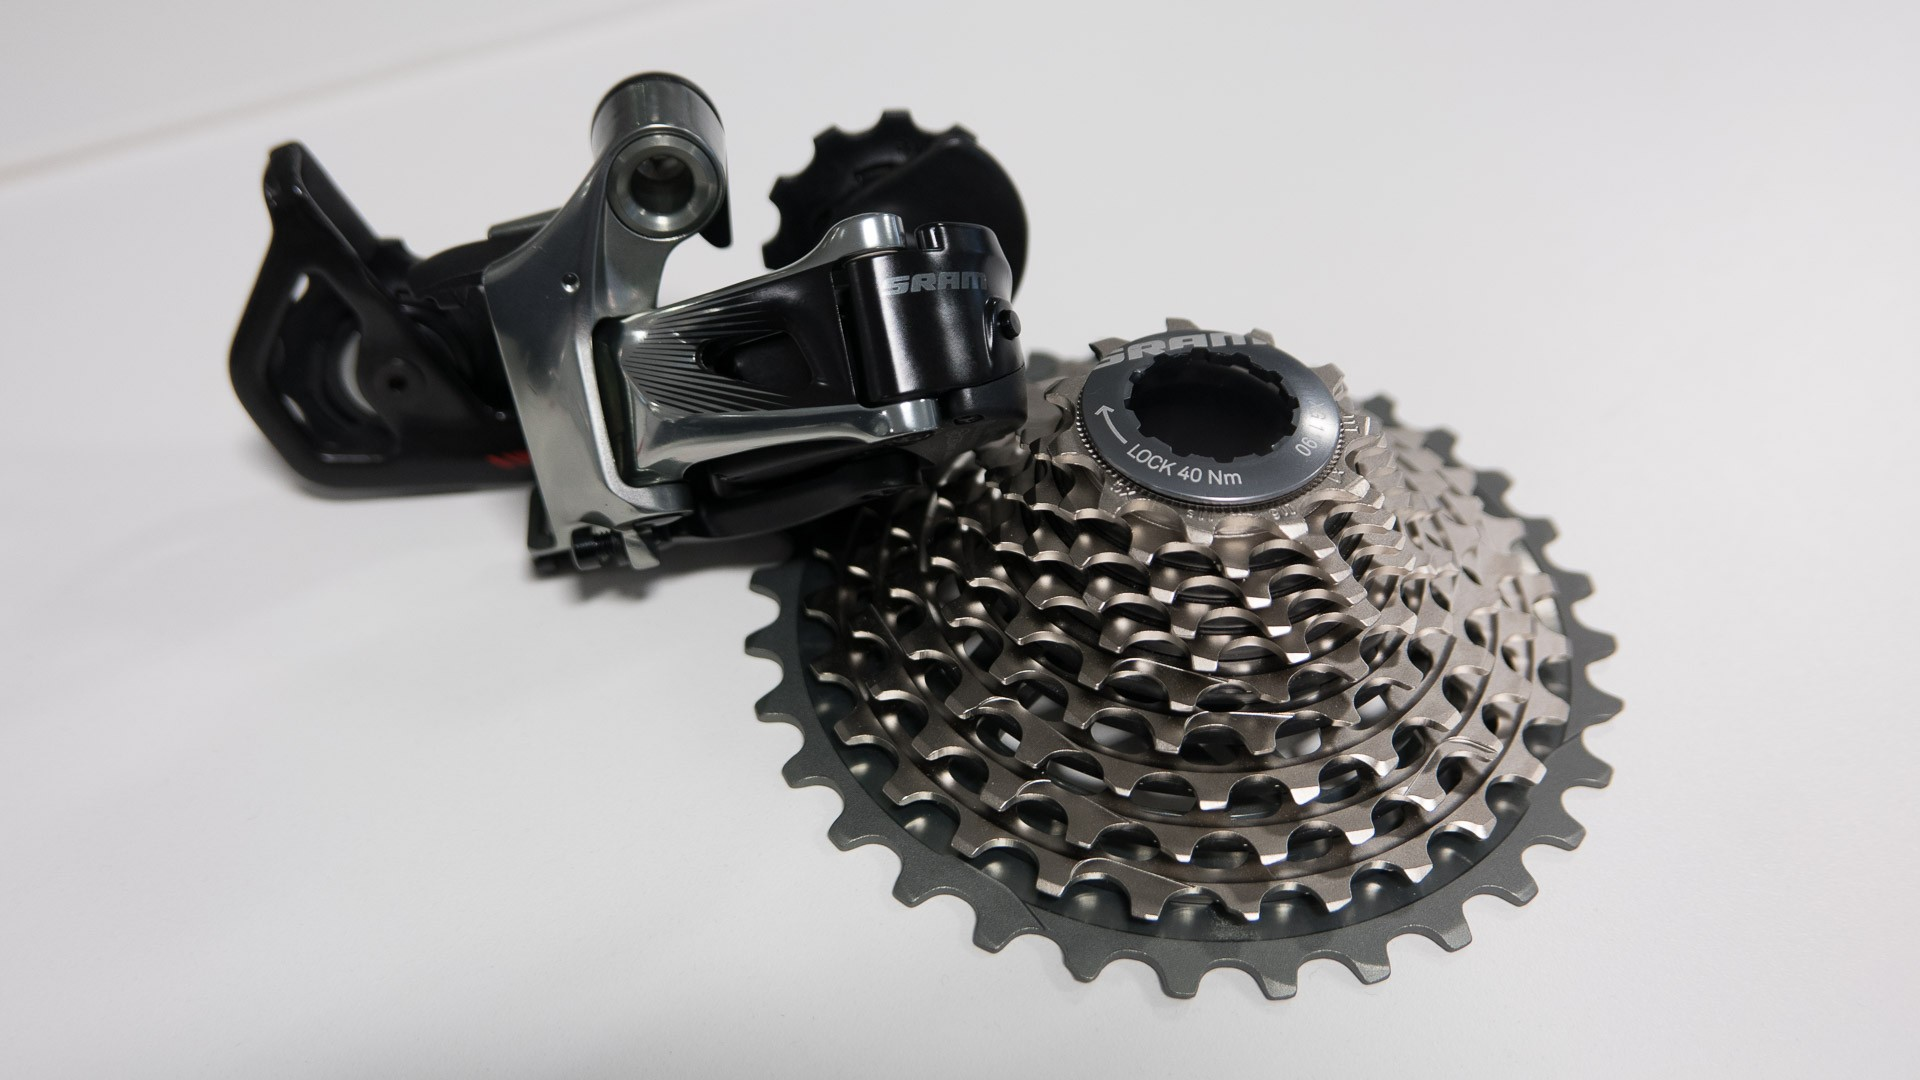 It's the most fly groupset out there: SRAM's WiFLi means shifting with no wires